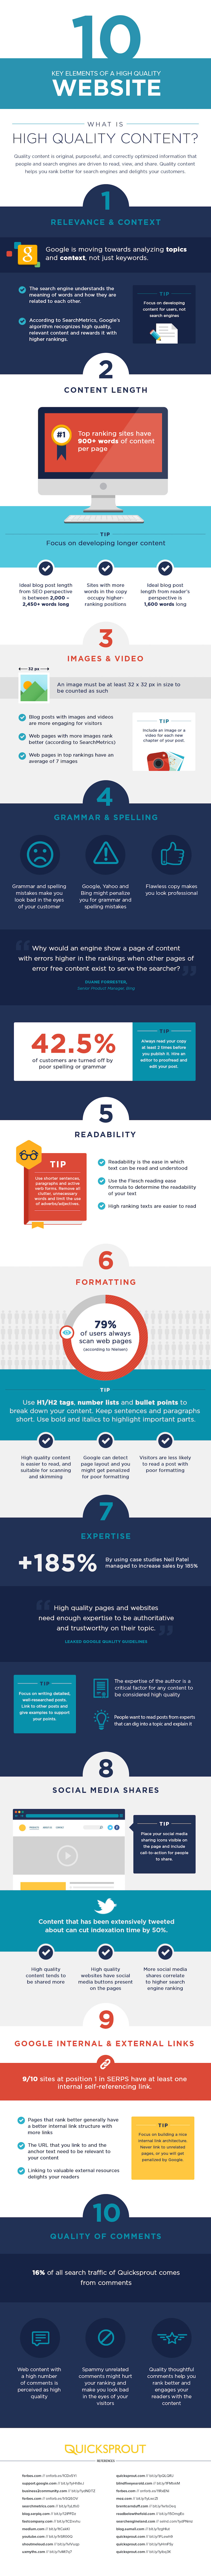 Guide: Top 10 Key Elements Of A High Quality Website